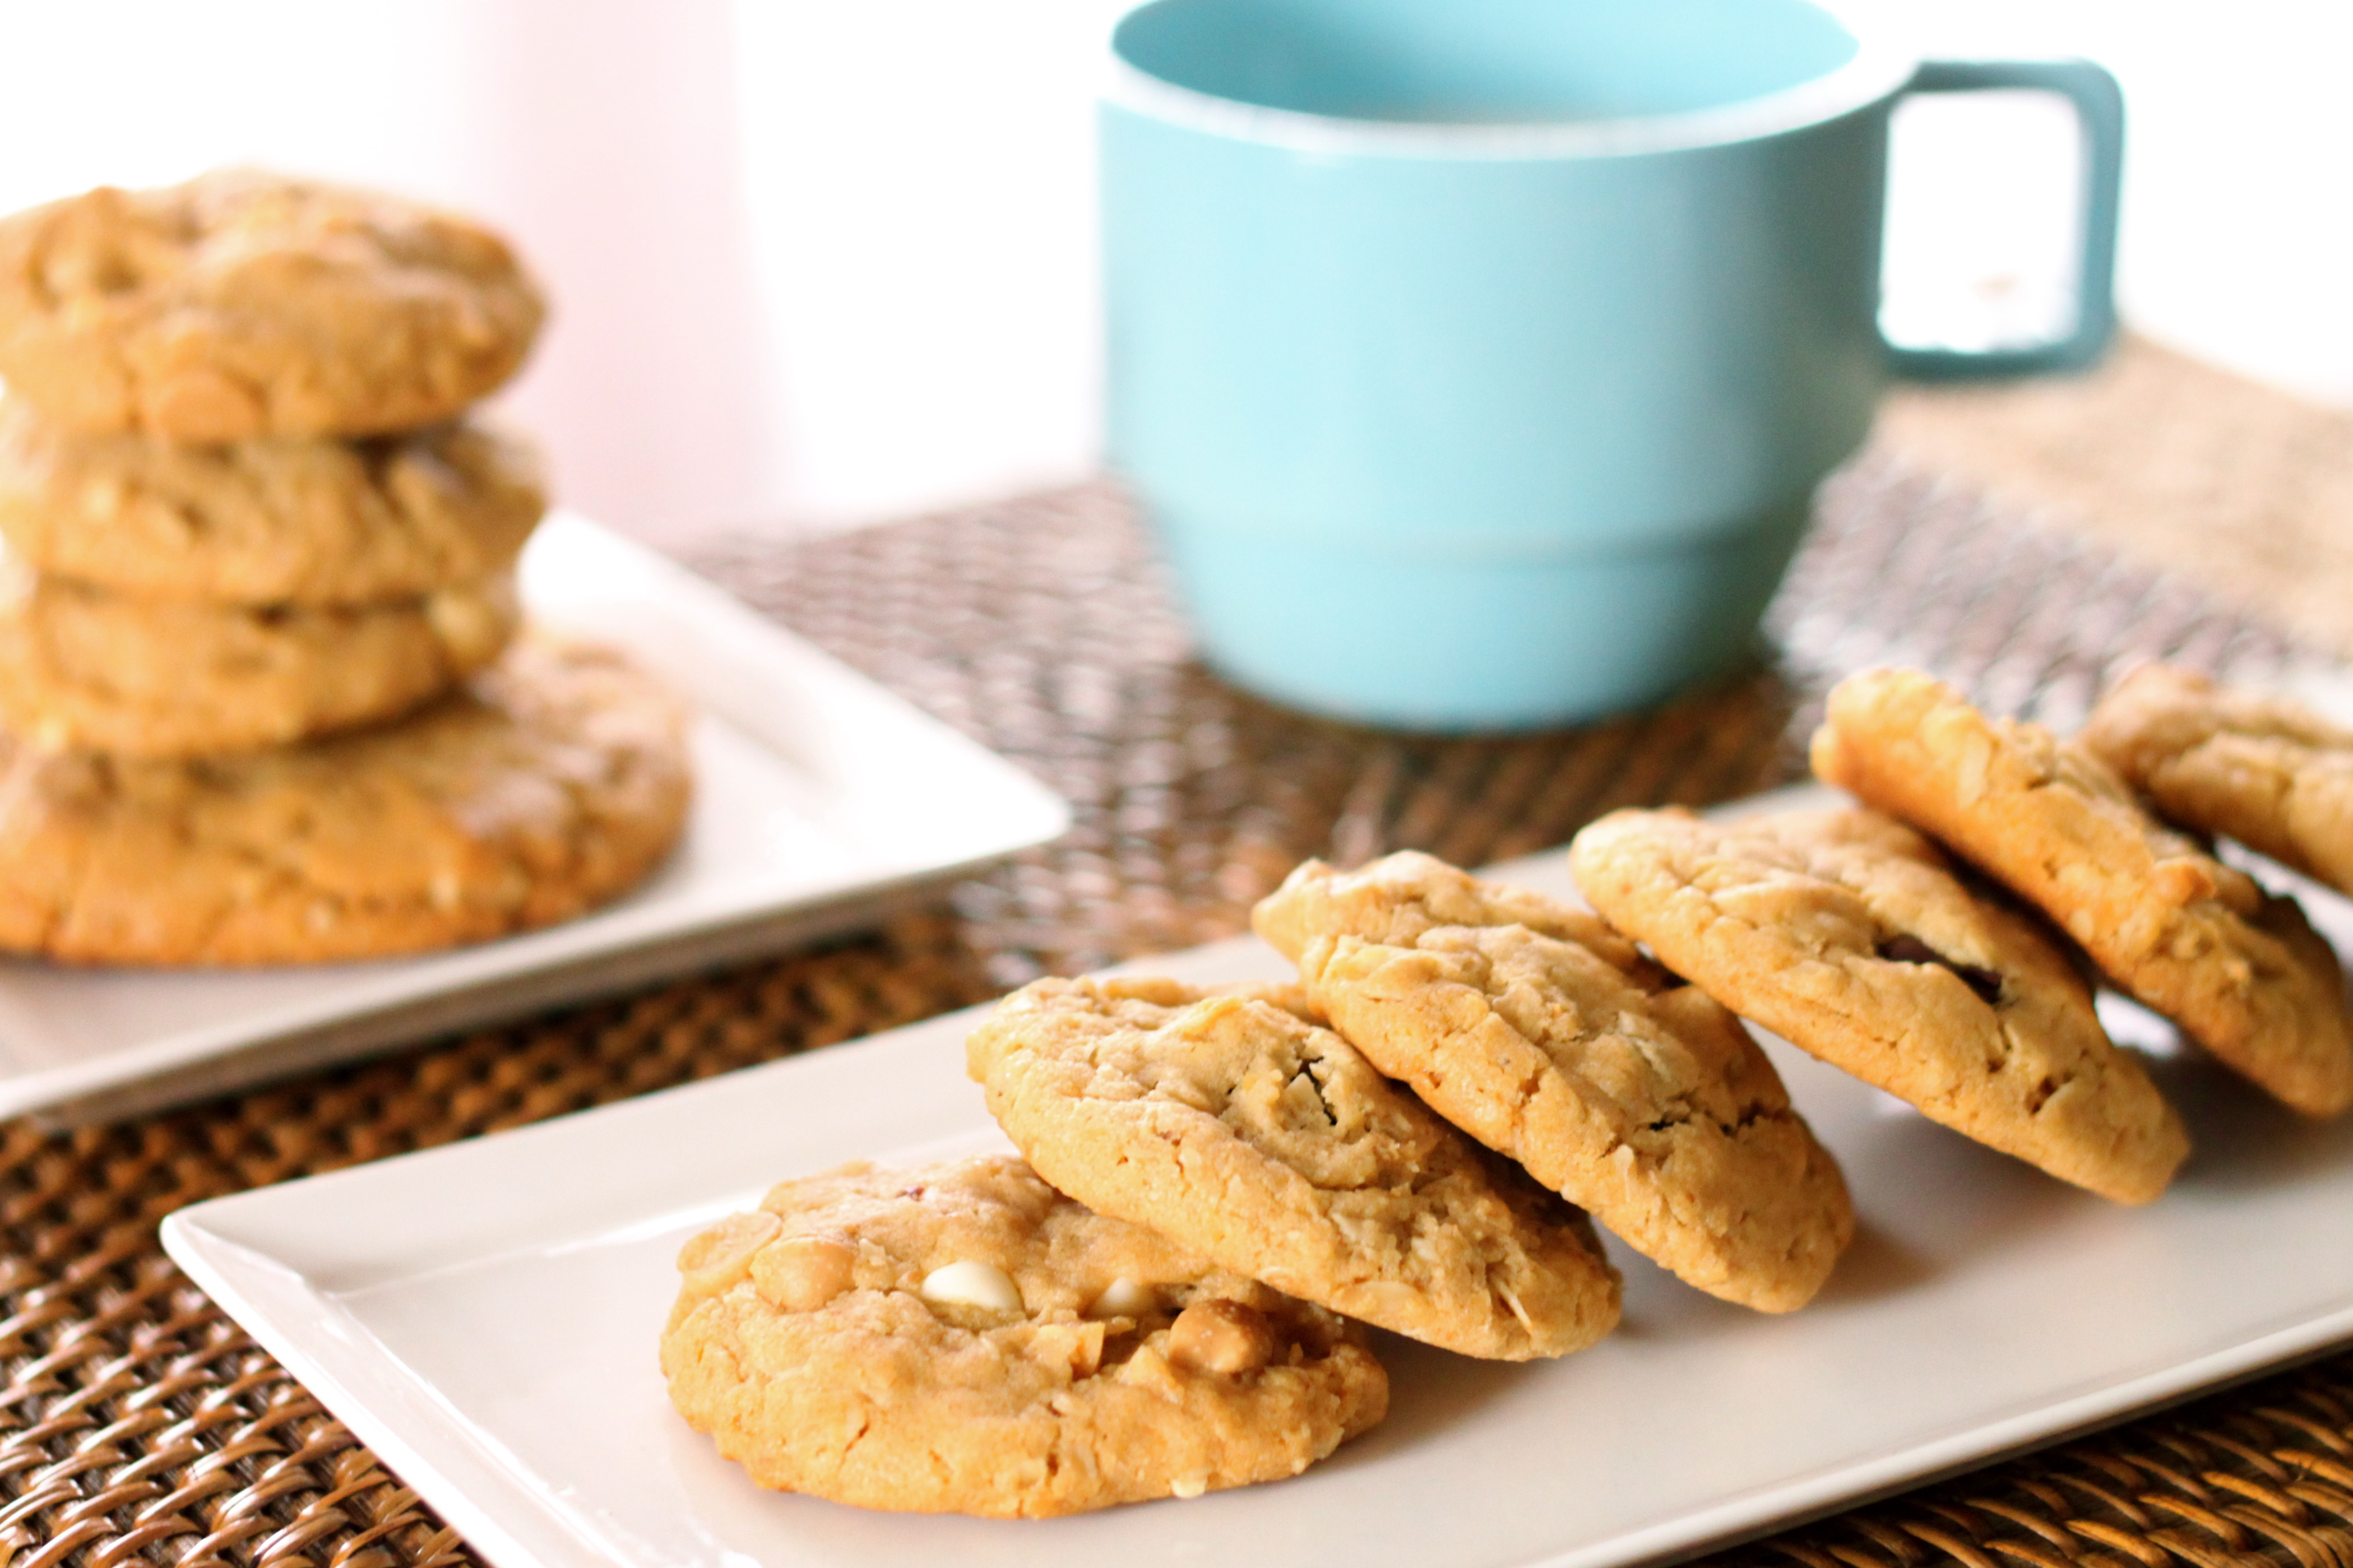 Ultimate Oatmeal Peanut Butter Cookies